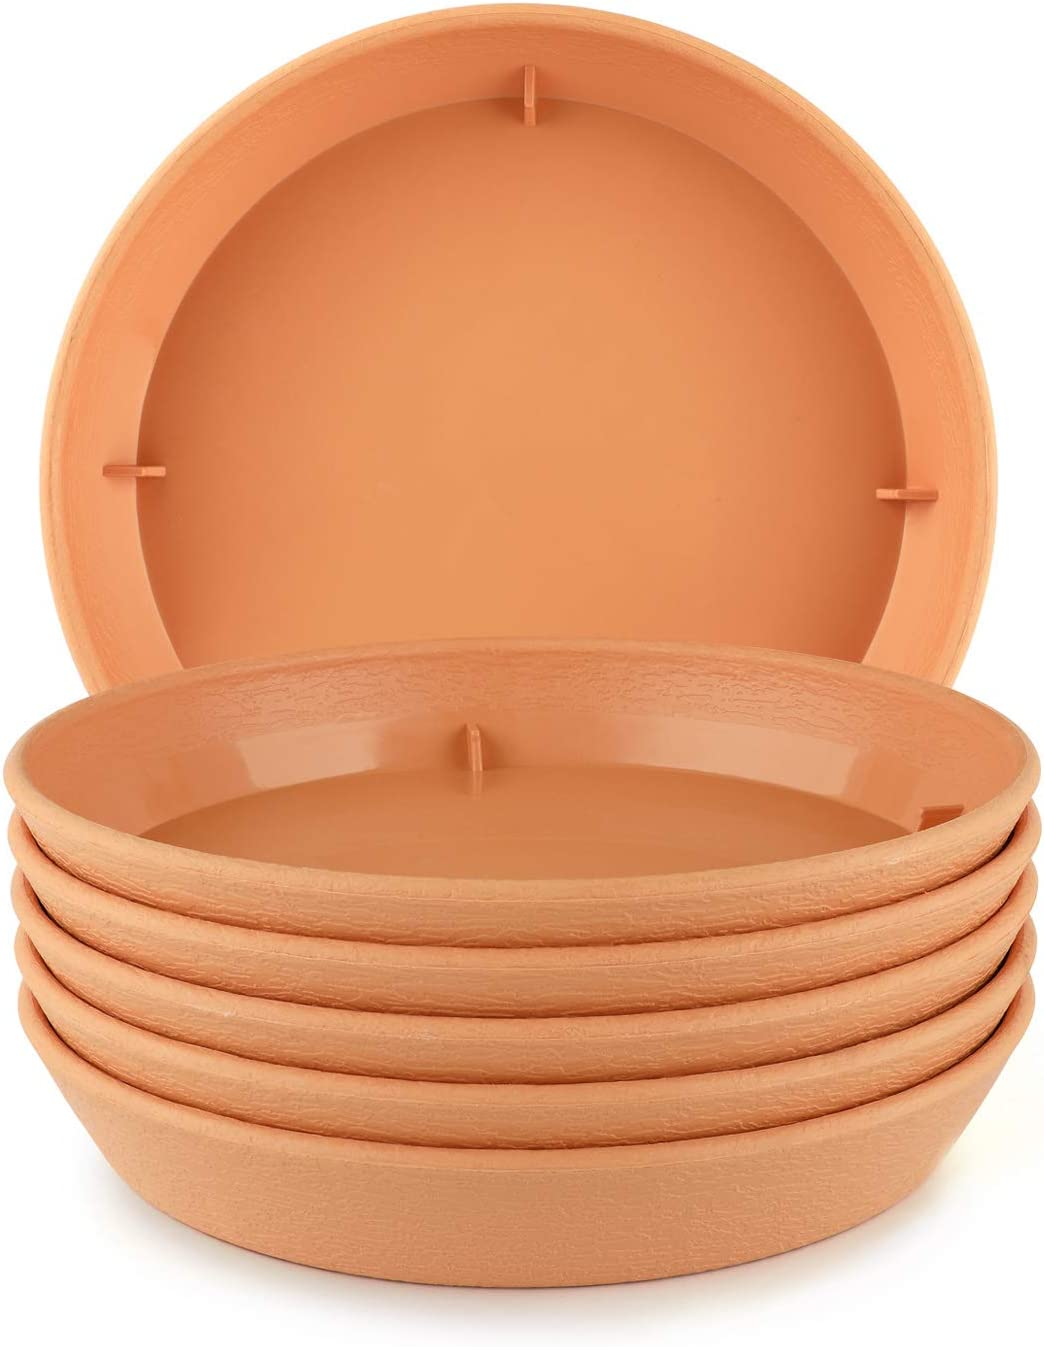 T4U Plastic Plant Pot Saucers with Faux Clay Finish 6 Inch Beige Set of 6 Round Hevay Duty Small Flowerpot Tray Resin Plant Drip Saucer Base PP Coaster Pallet for Succulent Planter Pot